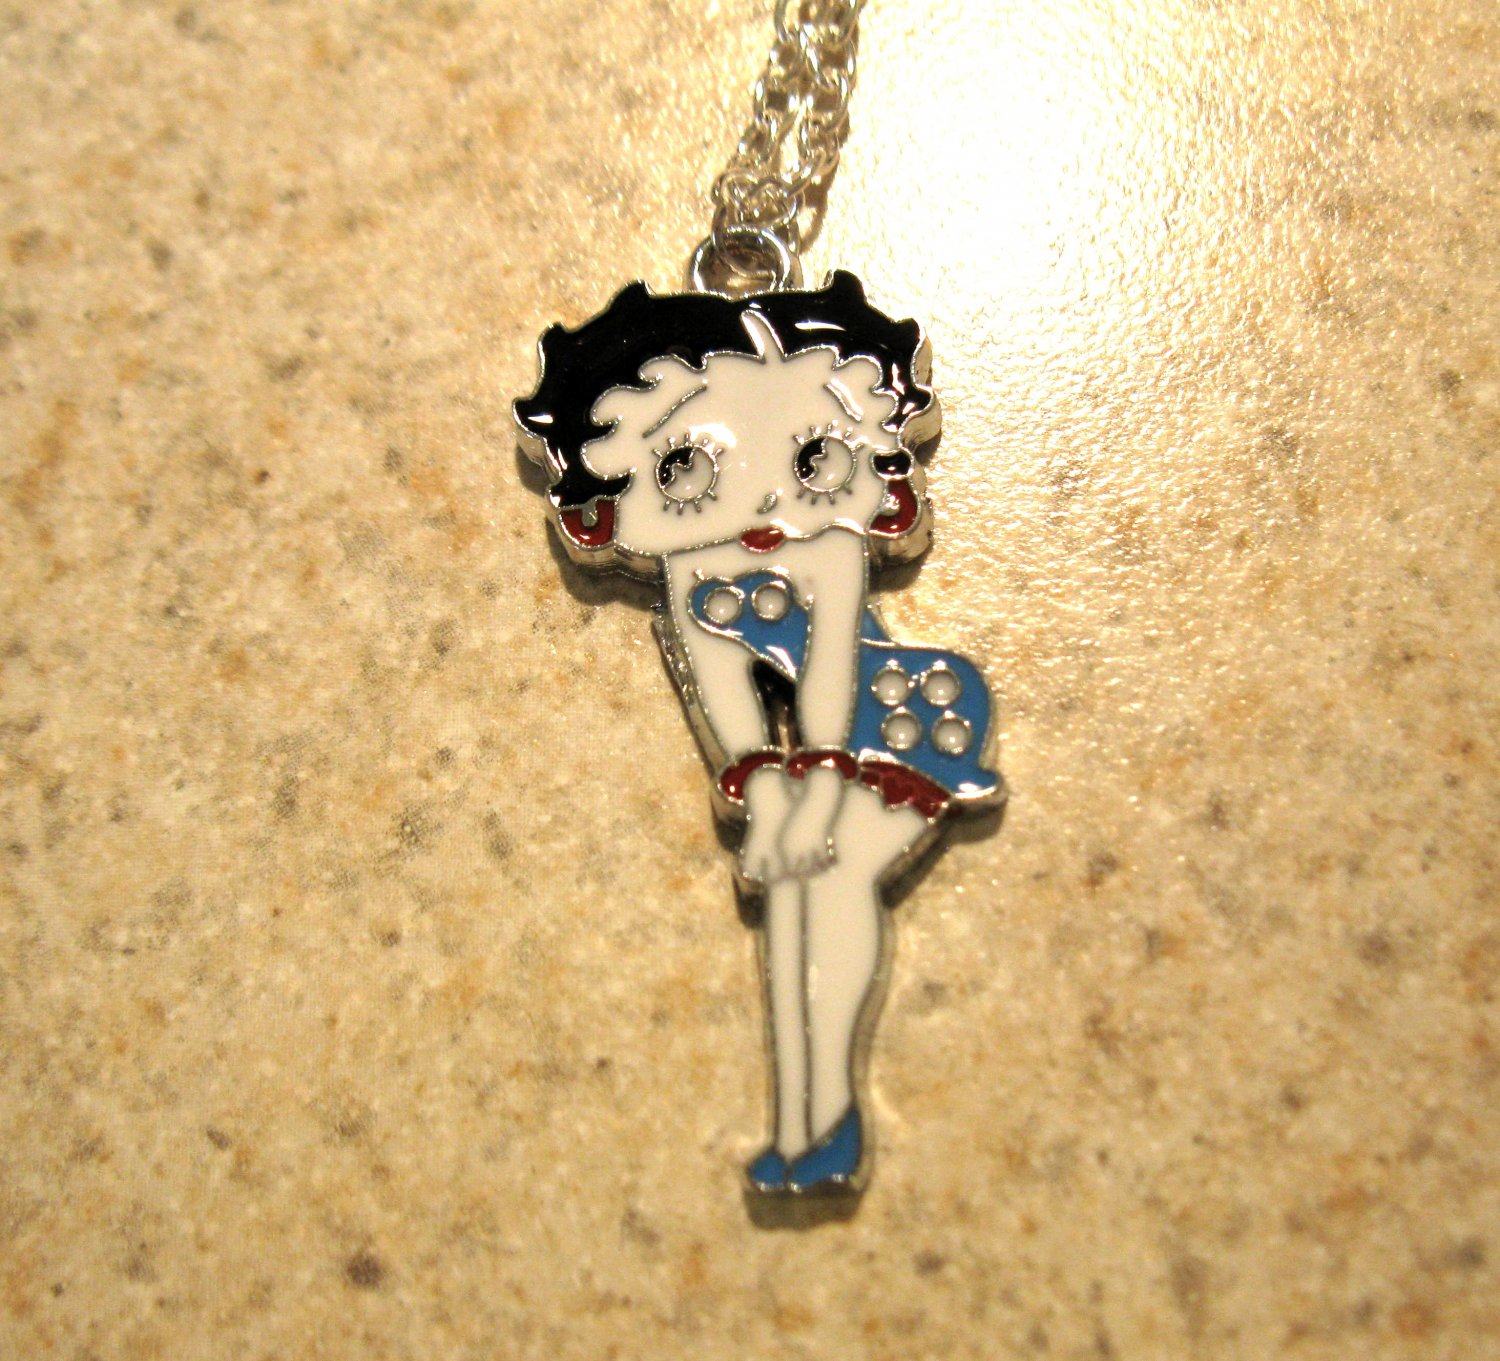 Aqua Polka Dot Betty Boop Necklace & Pendant New #639